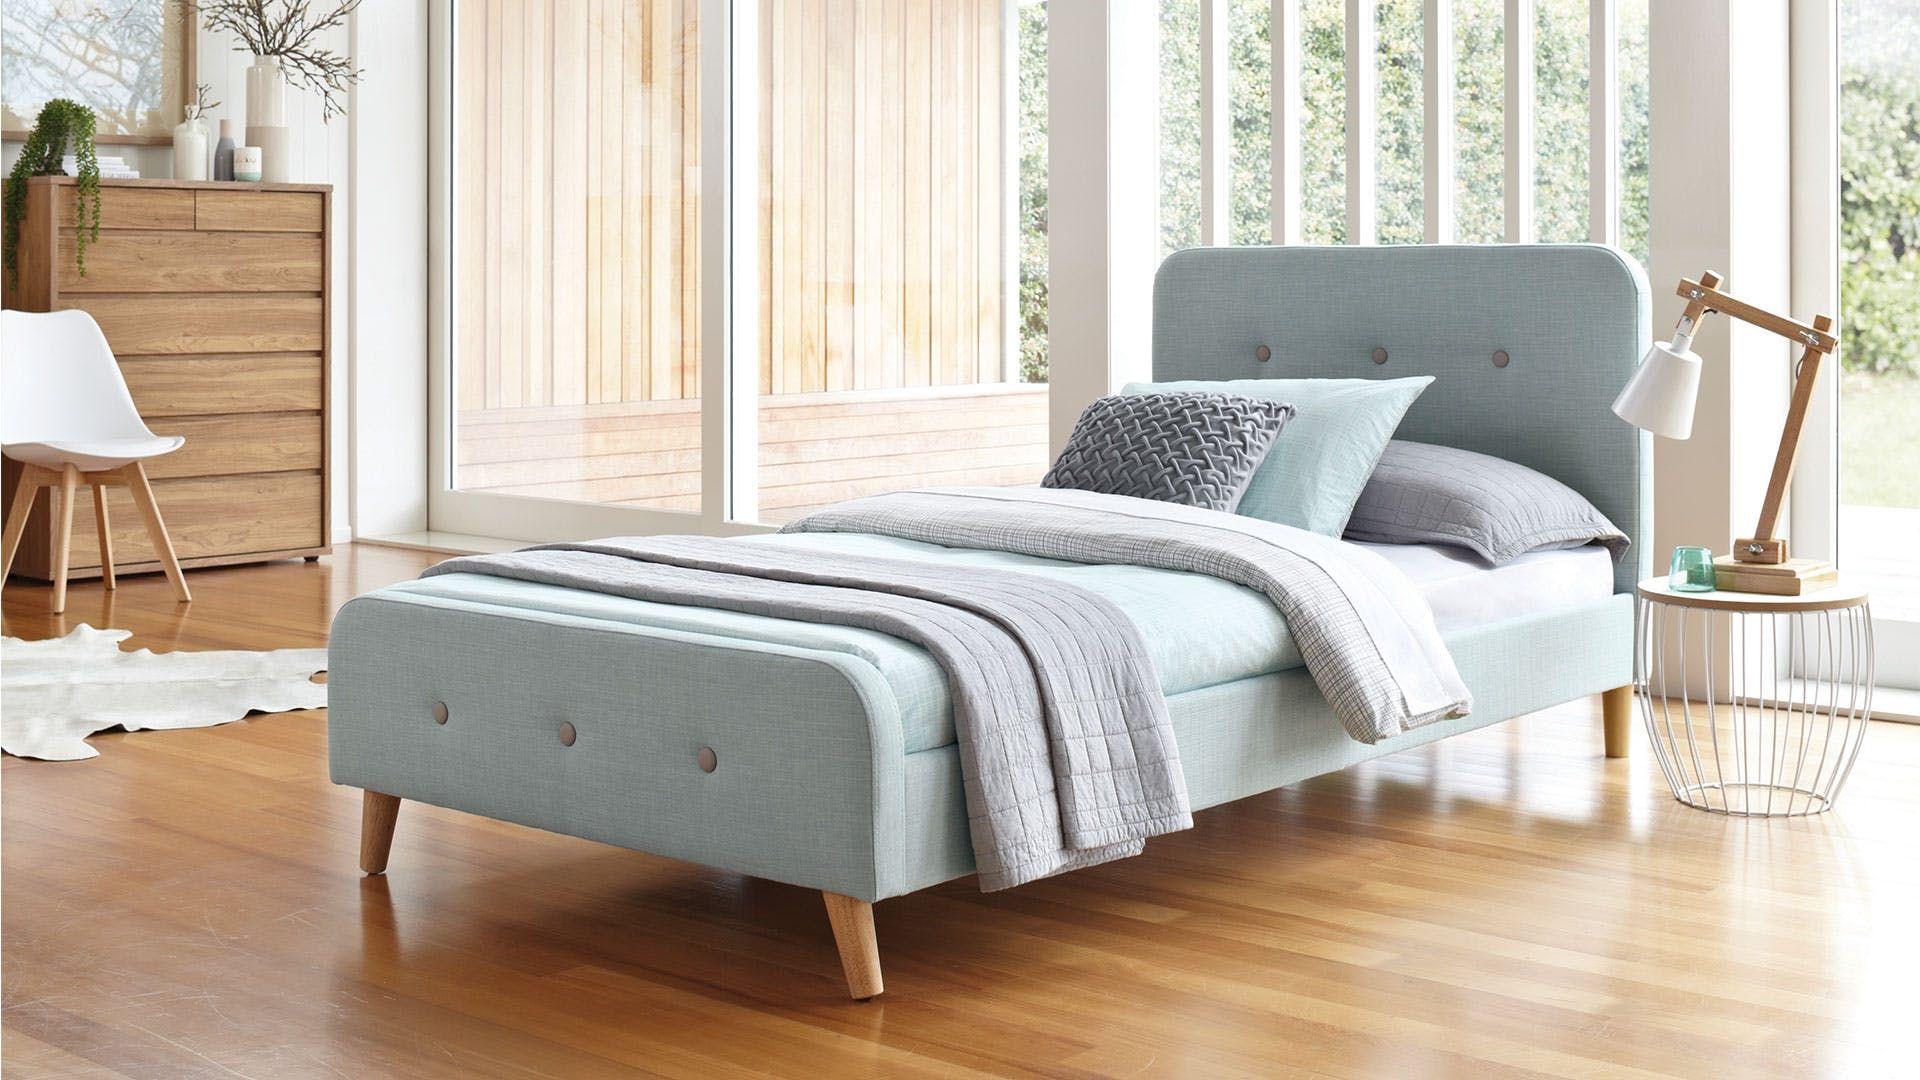 Calypso King Single Bed Frame By Nero Furniture | Harvey Norman New Zealand  | King Single Bed, Single Bed Frame, Bed Frame